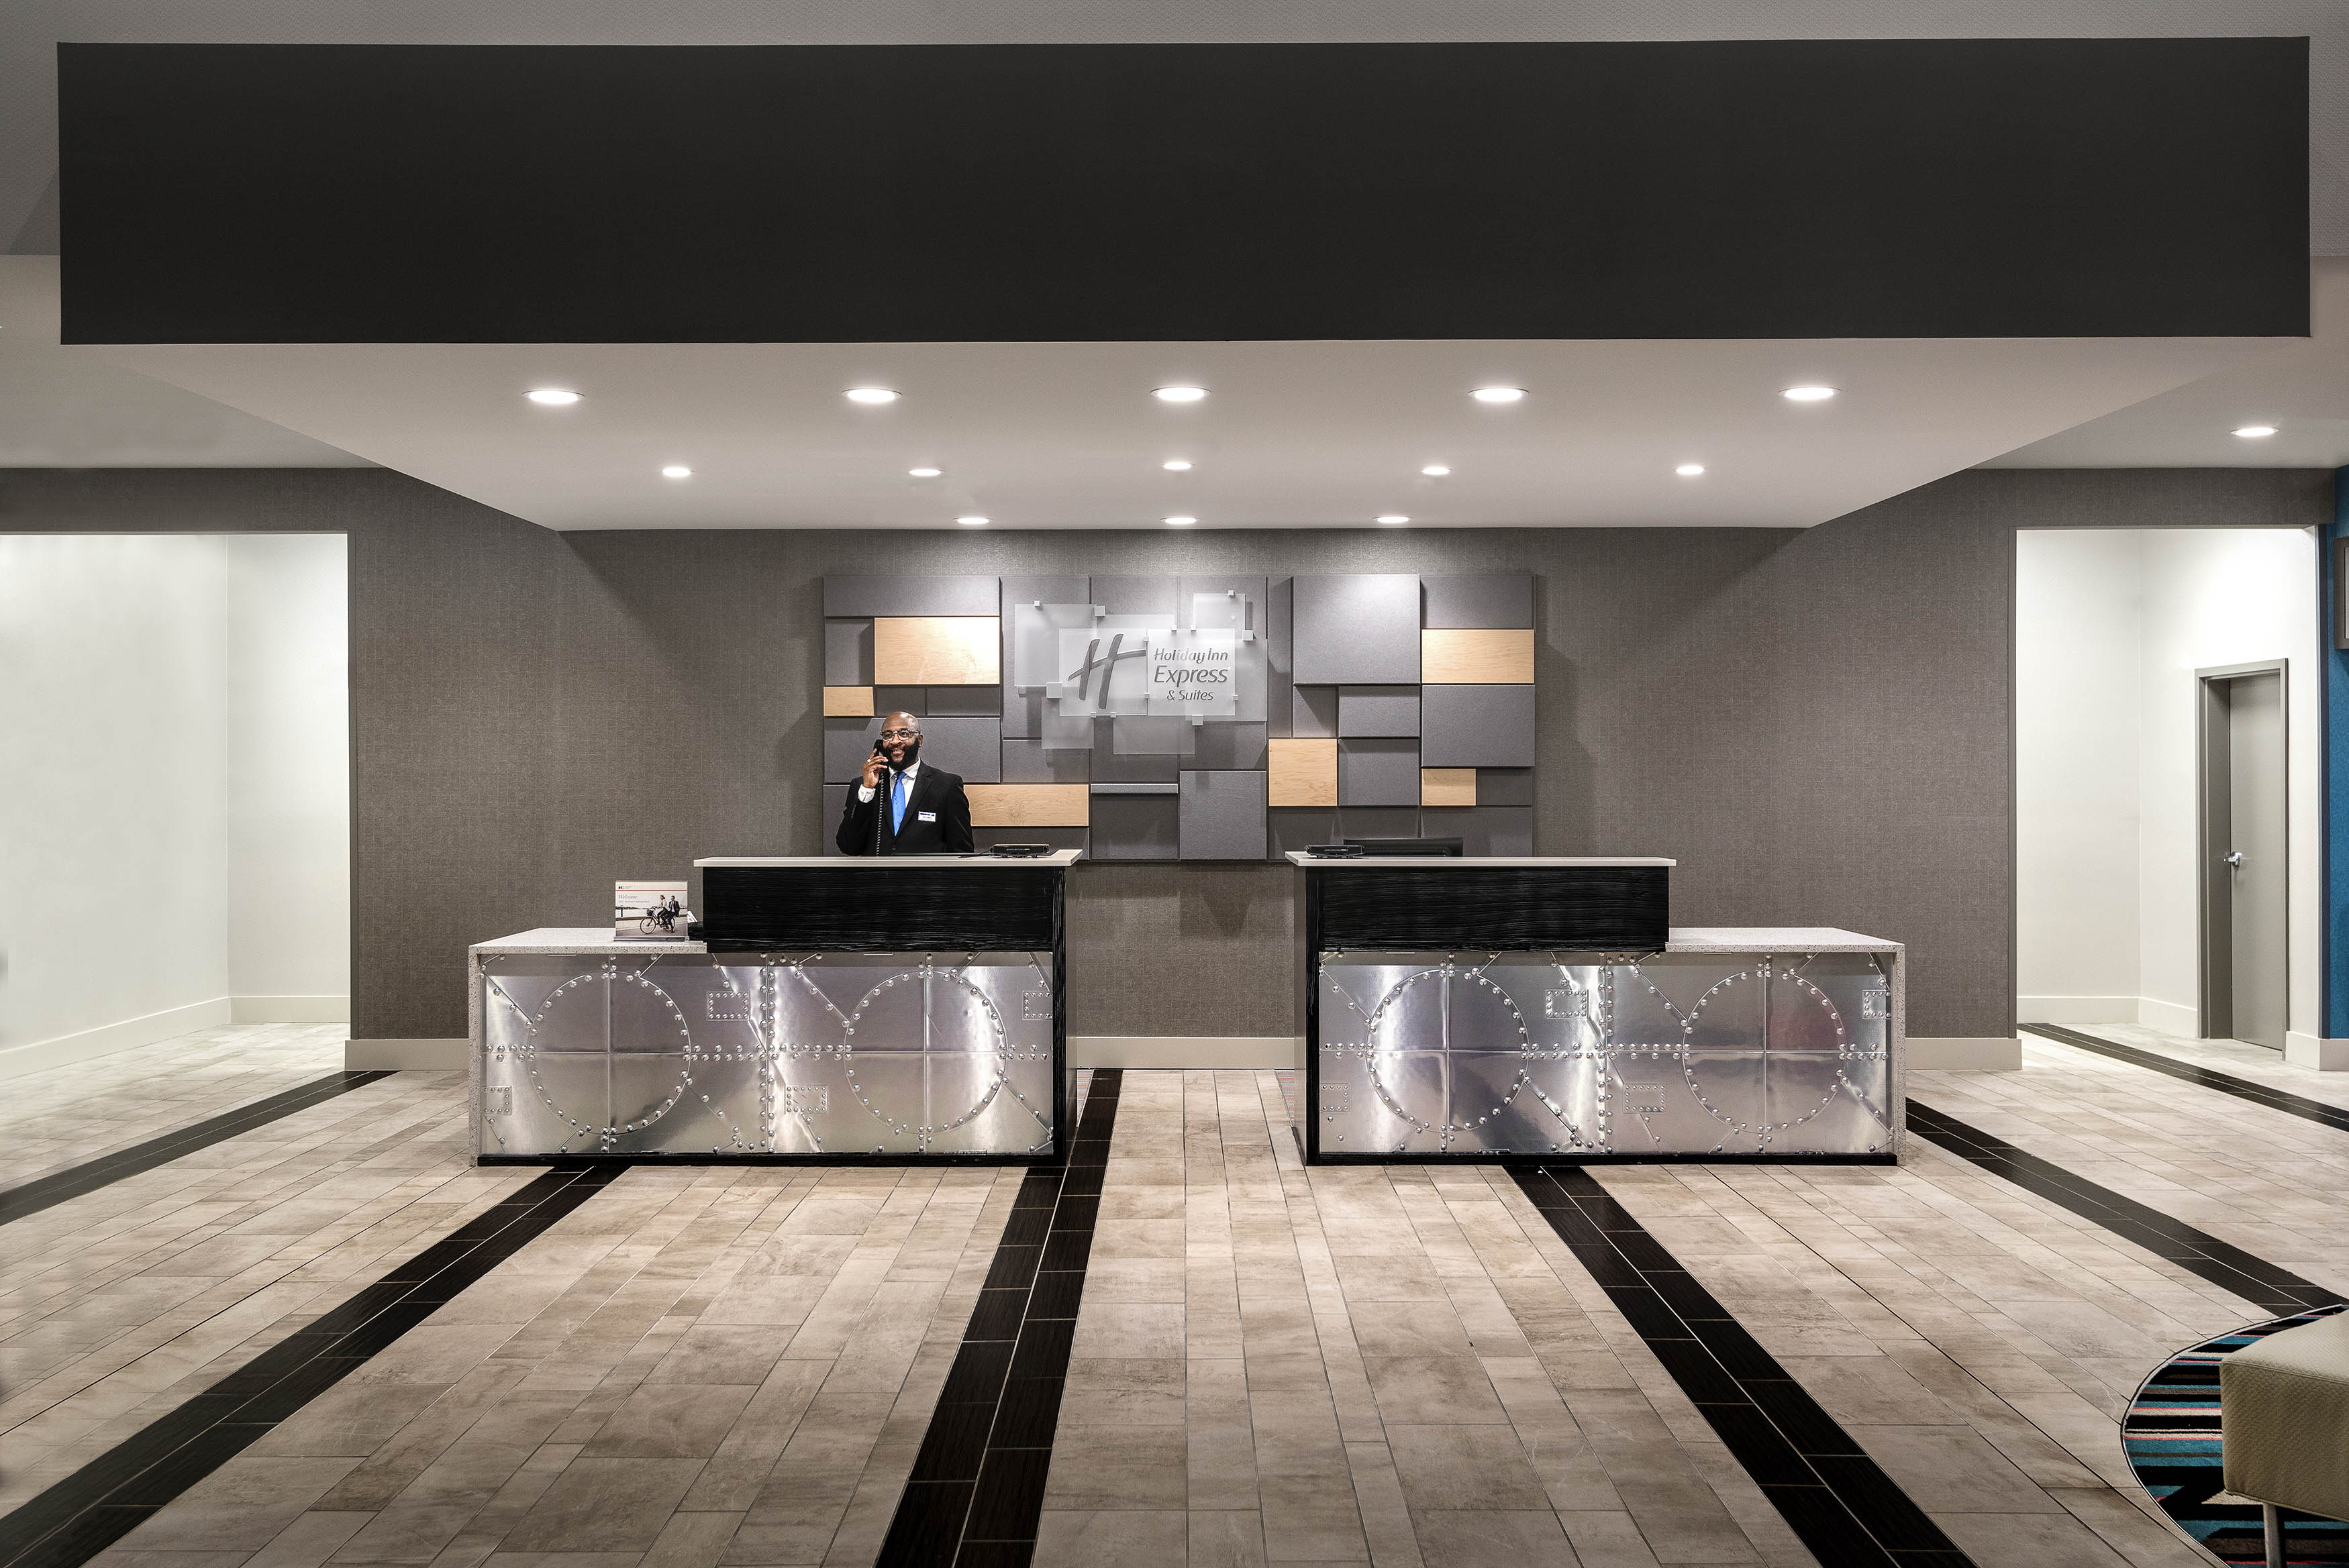 holiday-inn-express-charlotte-nc-artisan-row-studio-front-desk-agent